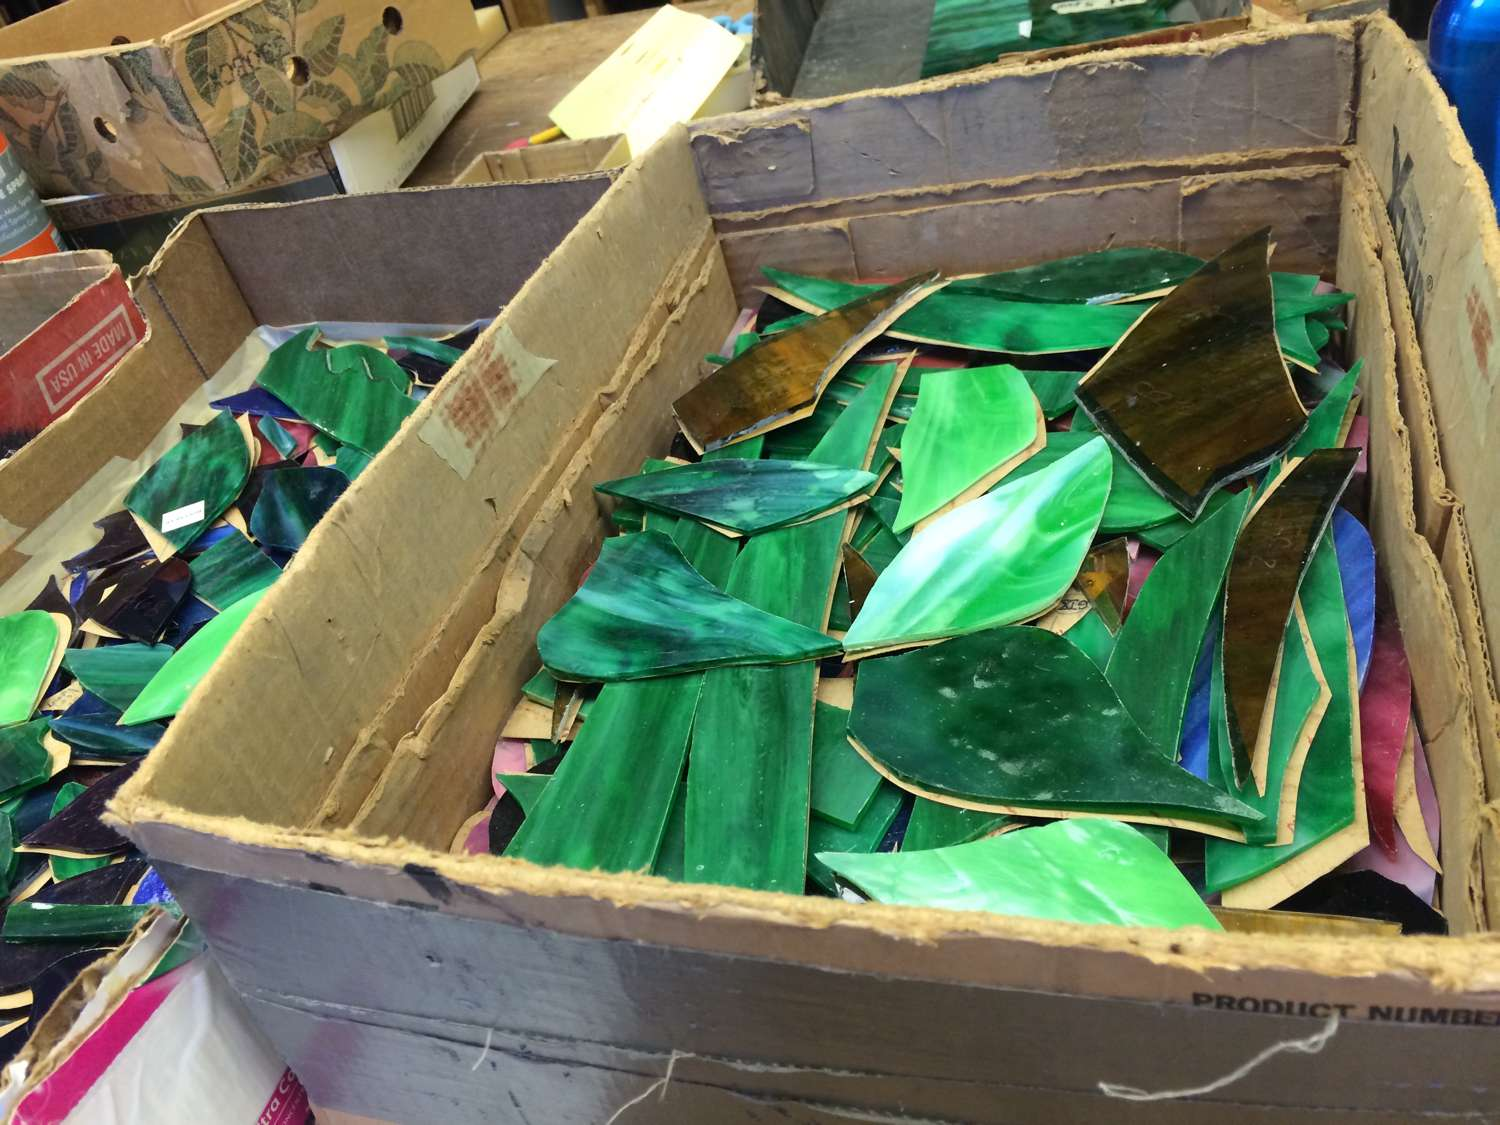 boxes of cut glass